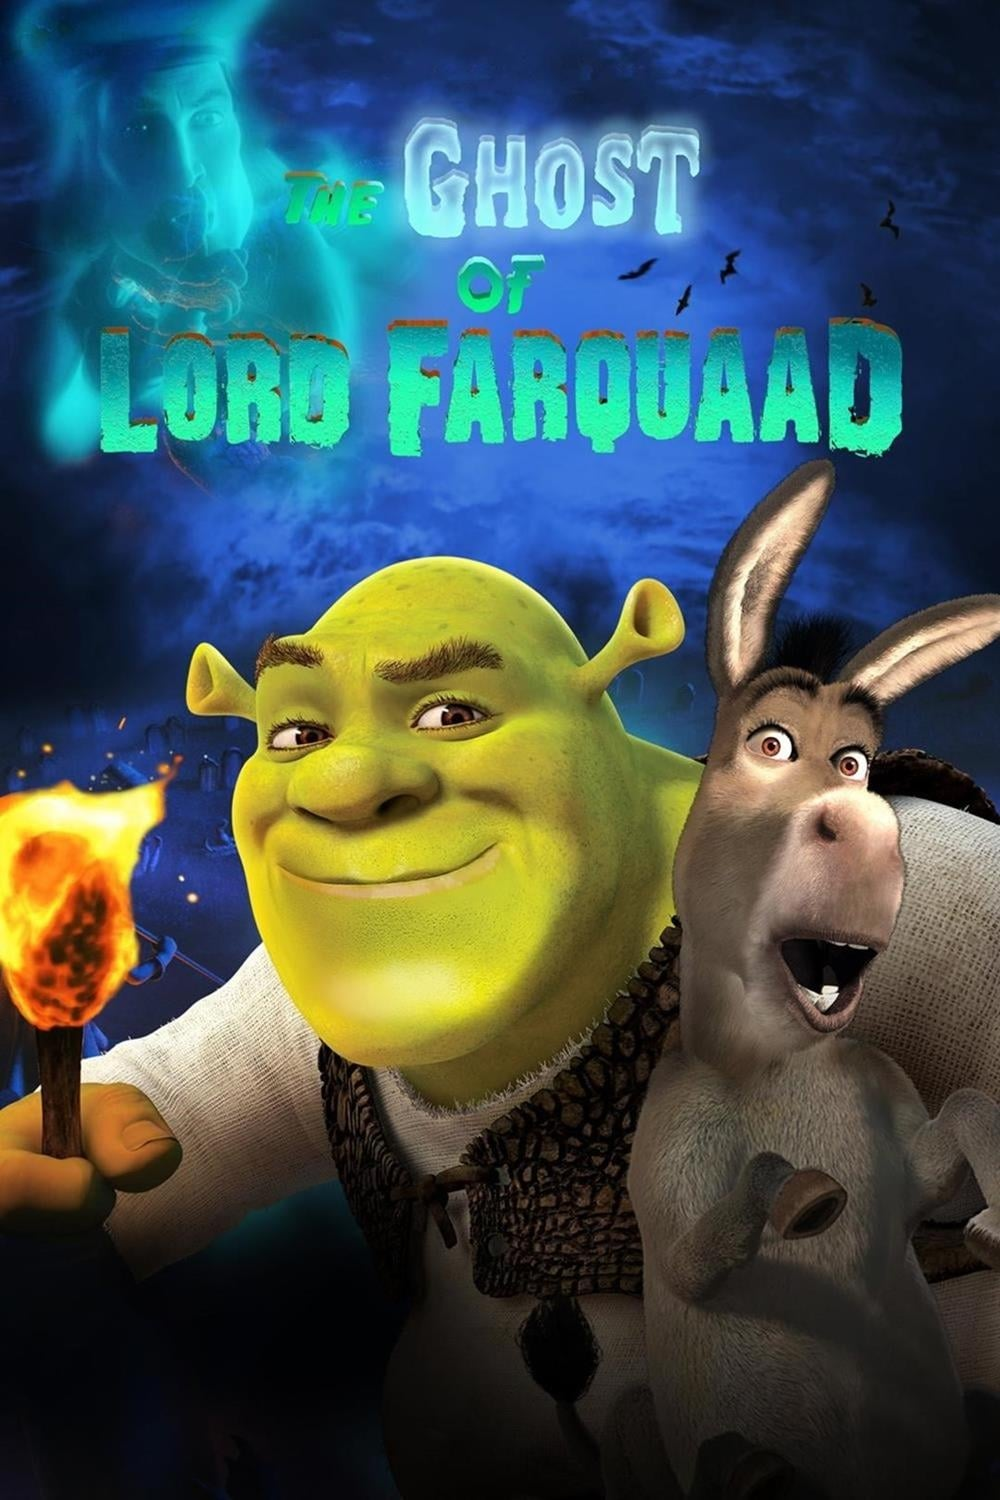 The Ghost of Lord Farquaad (2003)